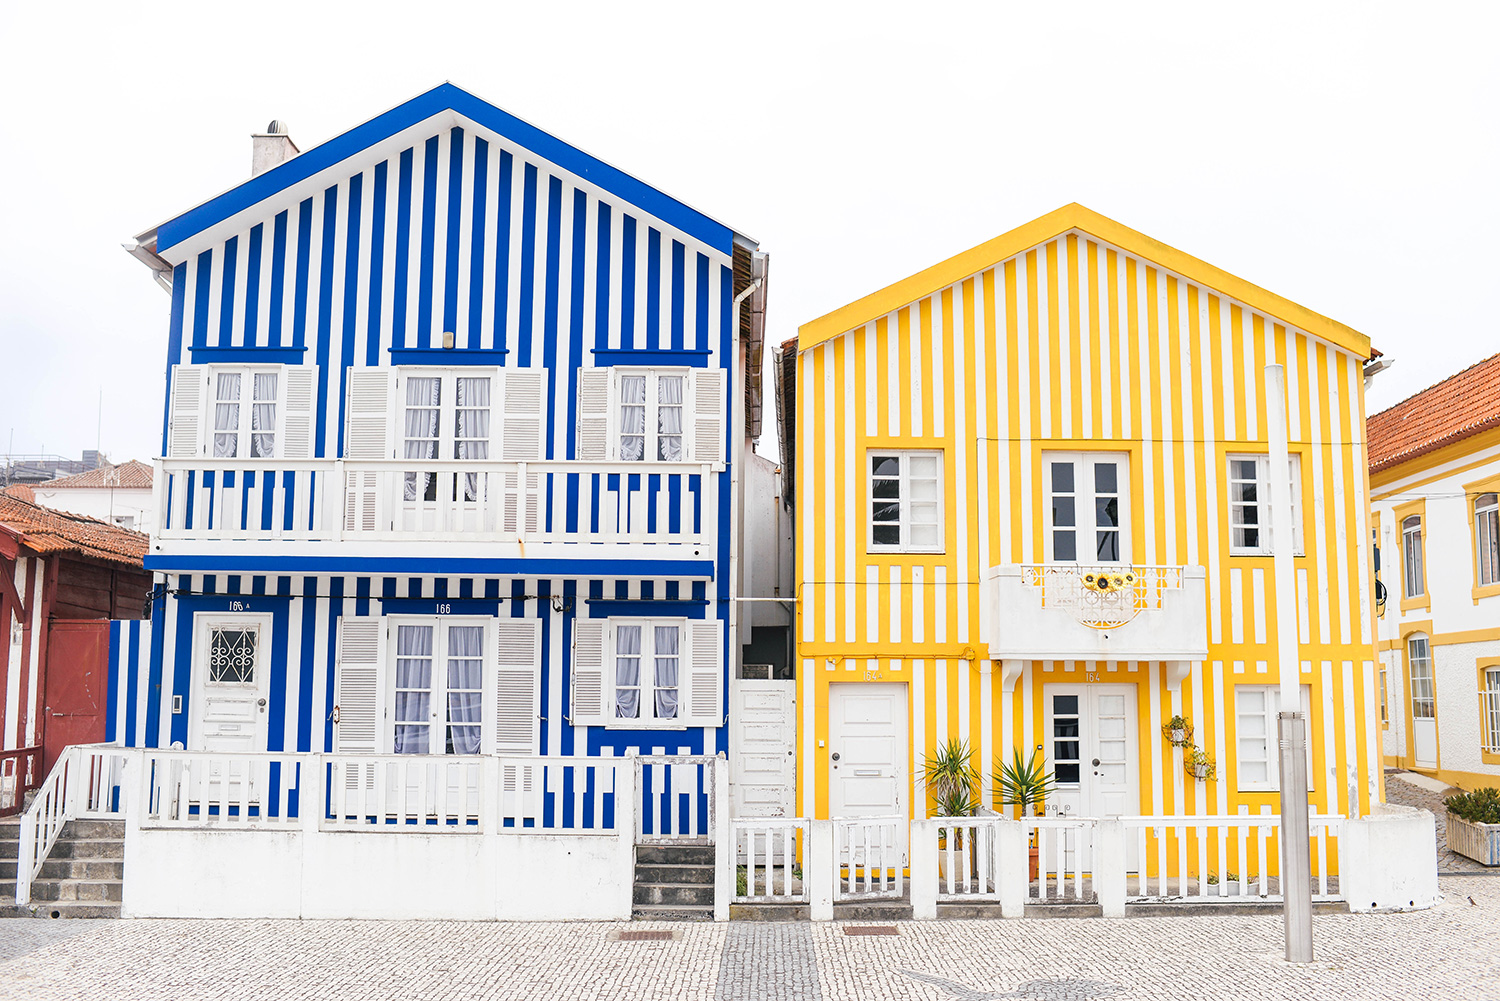 Exploring Costa Nova: Photos of the beach, striped houses and more!